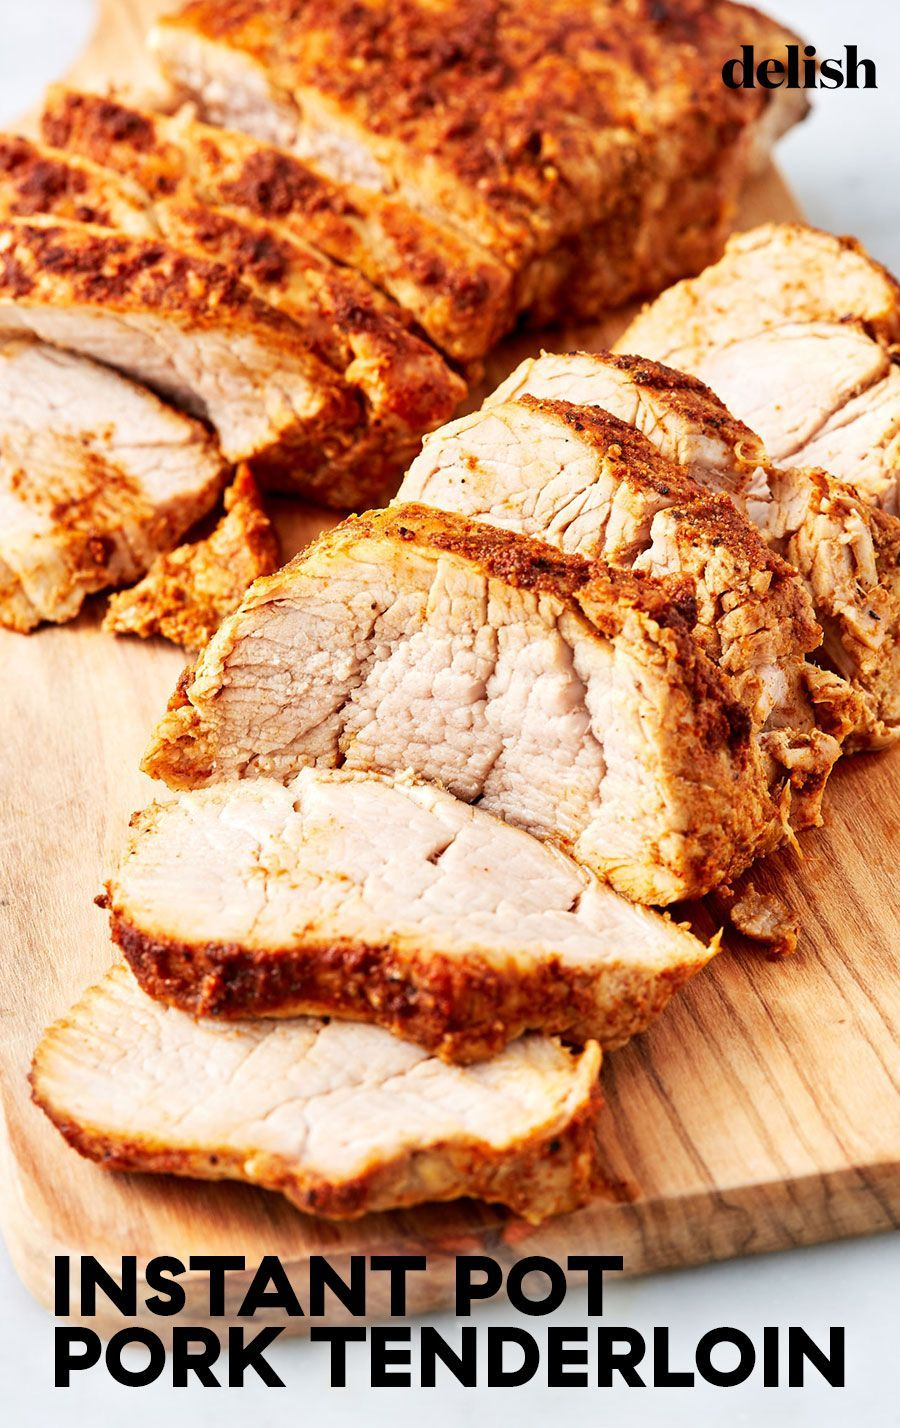 Instant Pot Pork Tenderloin Is The Definition of Perfectly Cooked